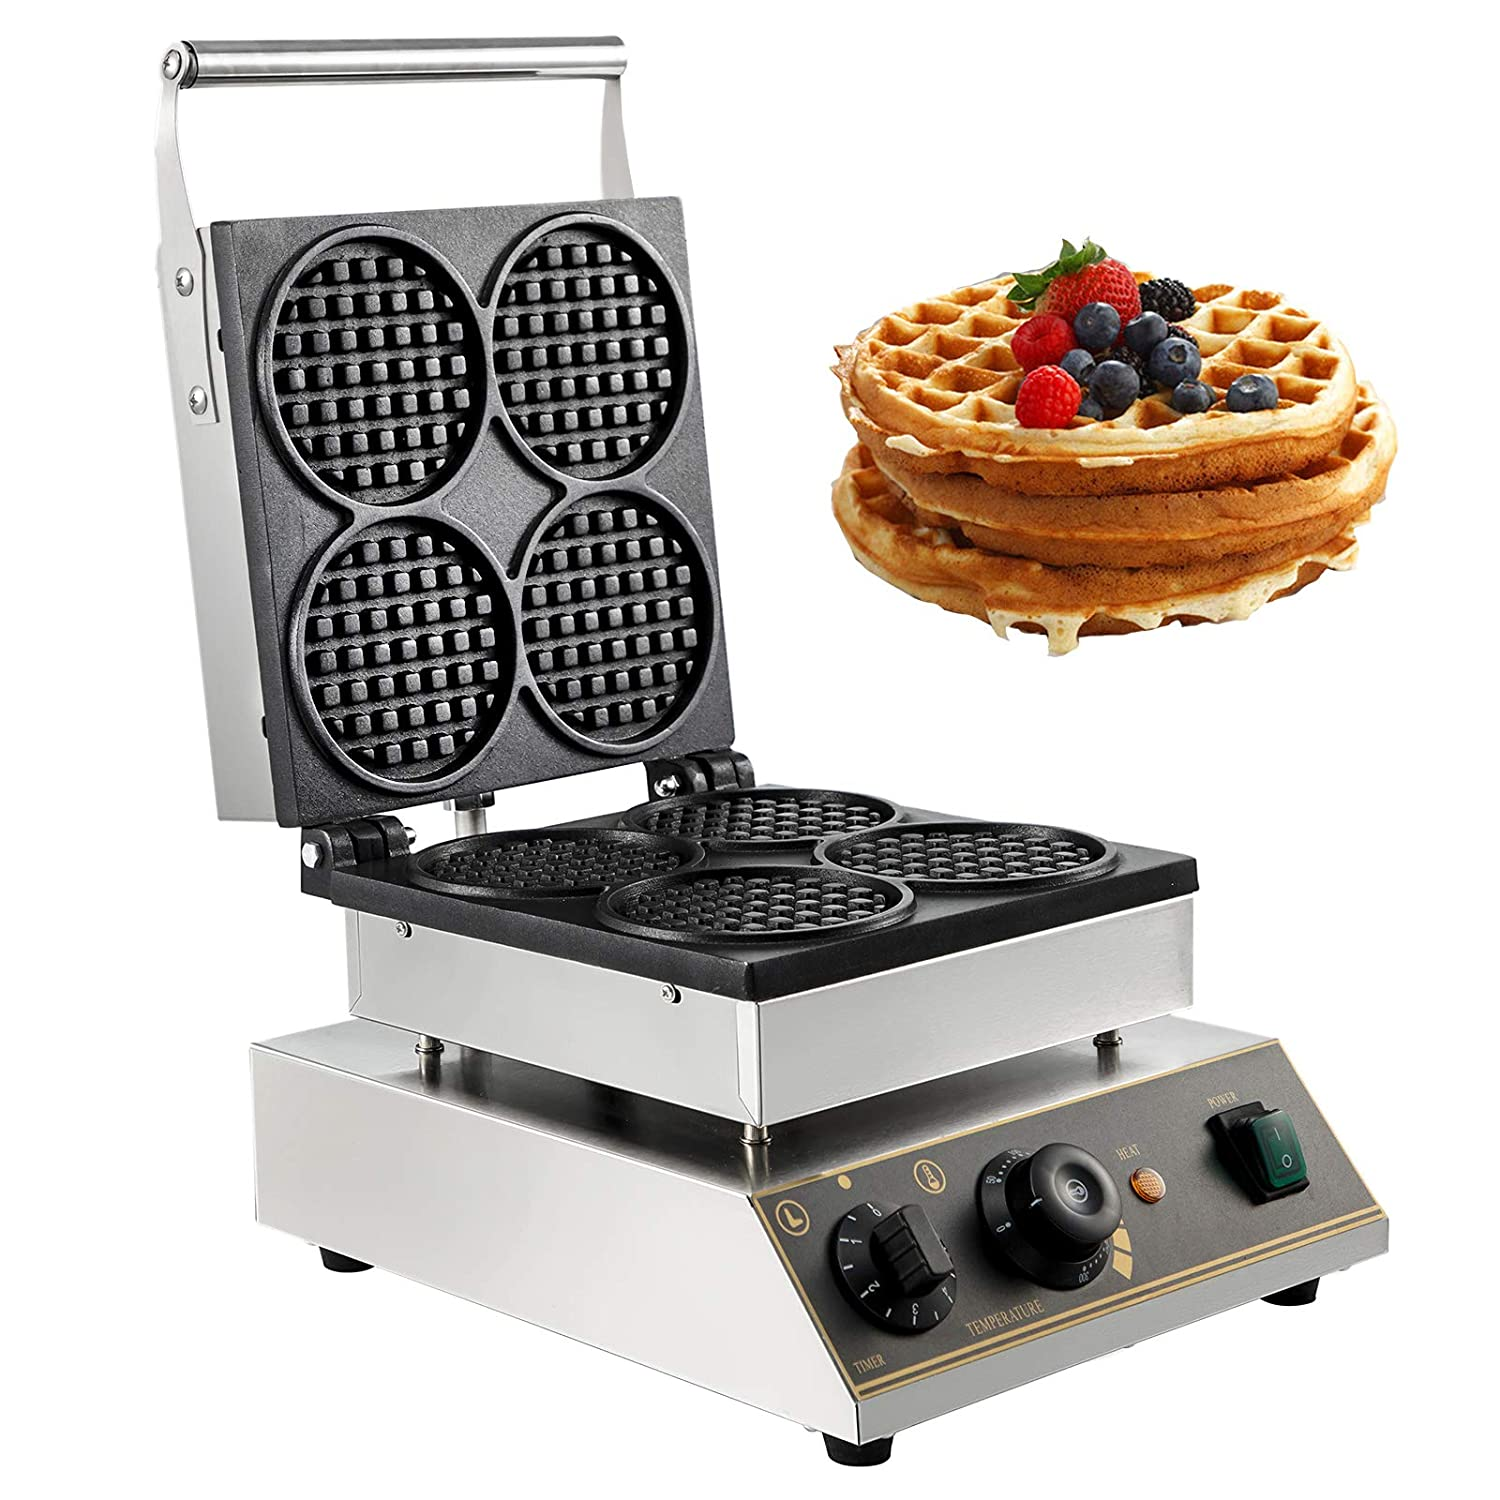 VBENLEM Commercial Round Waffle Maker 4pcs Nonstick Electric Waffle Maker Machine Stainless Steel 110V Temperature and Time Control Heart Belgian Waffle Maker Suitable for Restaurant Snack Bar Family